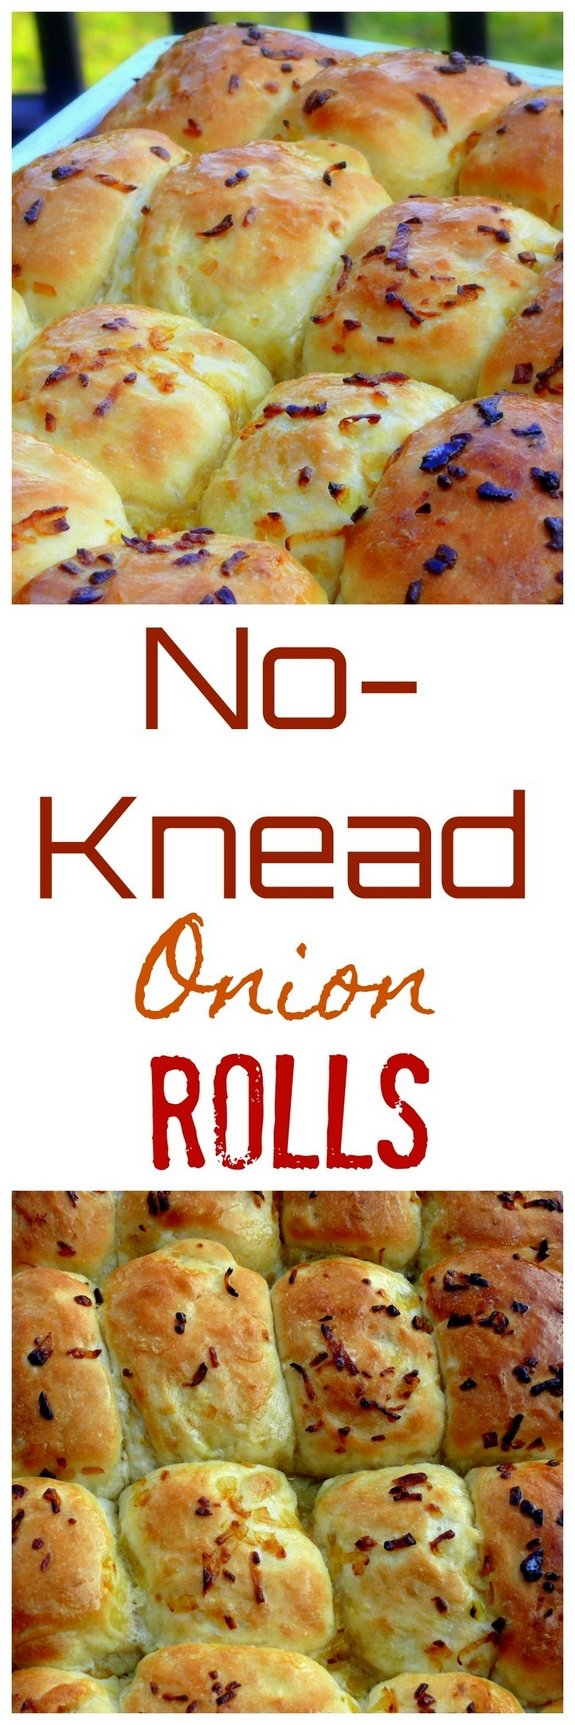 VIDEO + RECIPE: Soft and airy, these No-Knead Onion Rolls are the perfect addition to any dinner or lunch menu. It couldn't be easier than making the dough, letting it rise and shaping into balls for the oven. They make perfect slider buns too, from NoblePig.com.